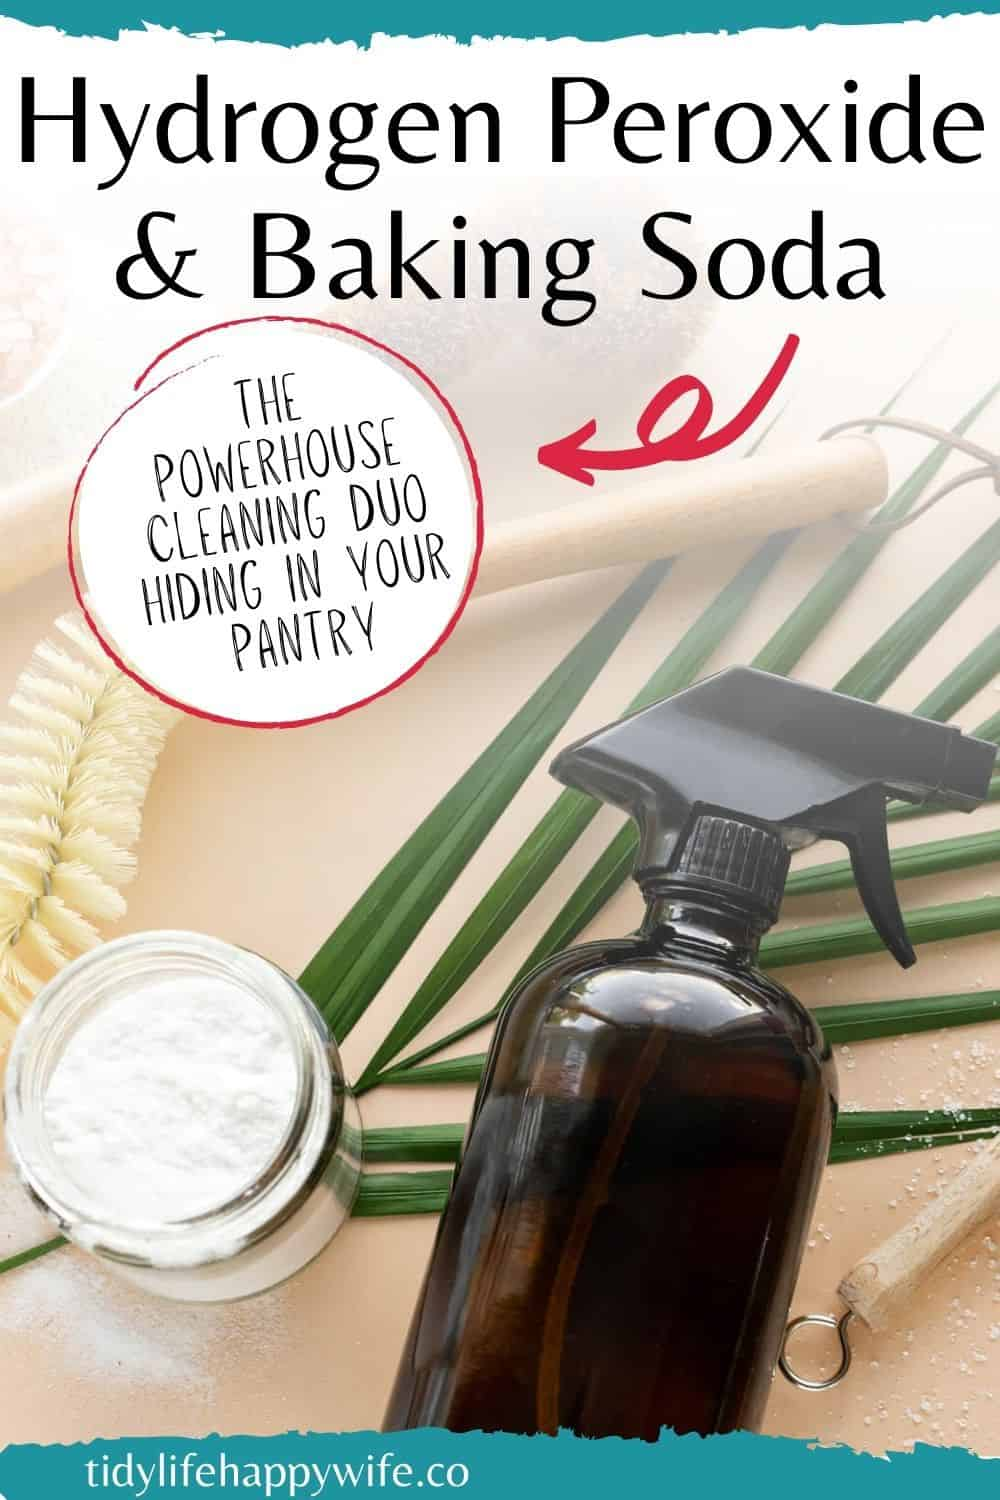 Need a tough cleaner for stubborn household messes? Try the powerful DIY duo of hydrogen peroxide and baking soda to knock out those nasty messes. Baked on grease, dirty grout, soap scum, laundry stains, and hard water buildup are no match for the DIY cleaning duo of hydrogen peroxide and baking soda. Natural, perfectly safe, and excellent cleaning power for the worst messes in your home. Discover what you can clean, and how to mix the perfect DIY cleaner. via @Tidylifehappywife